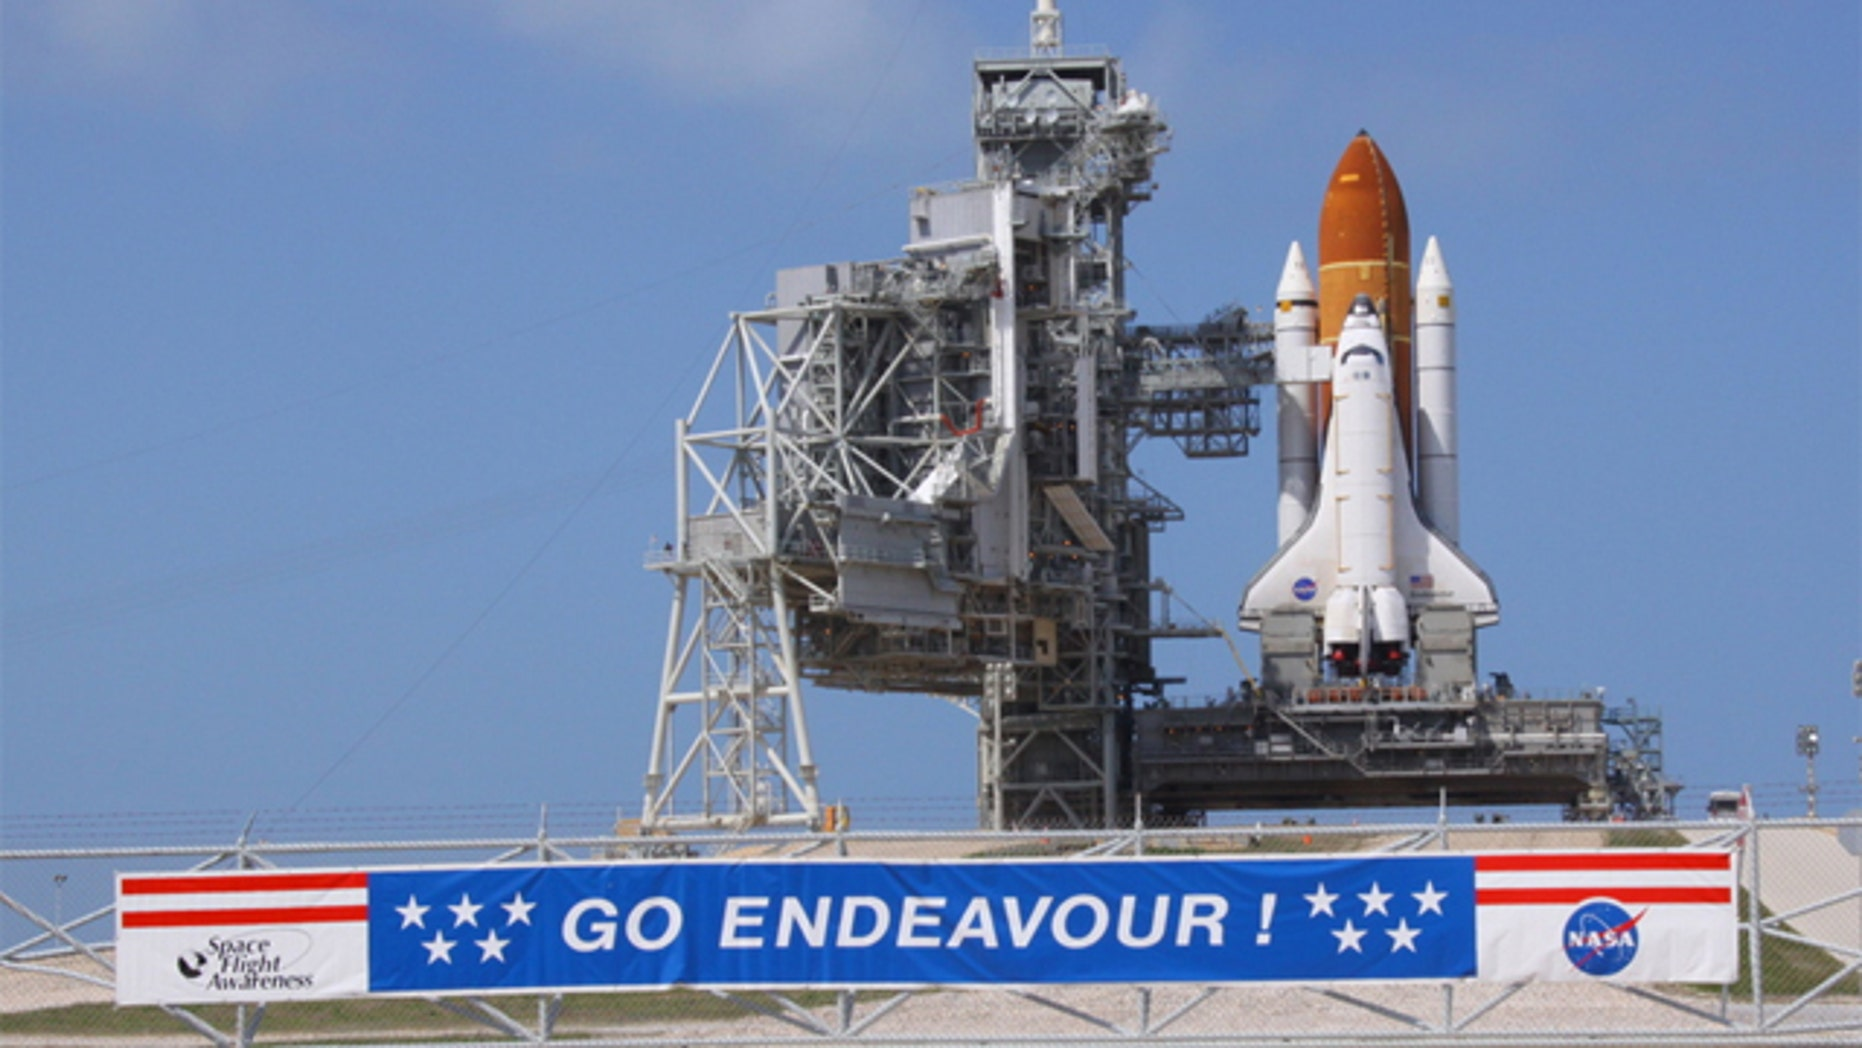 NASA must now deal with scammers on top of a delayed shuttle launch.